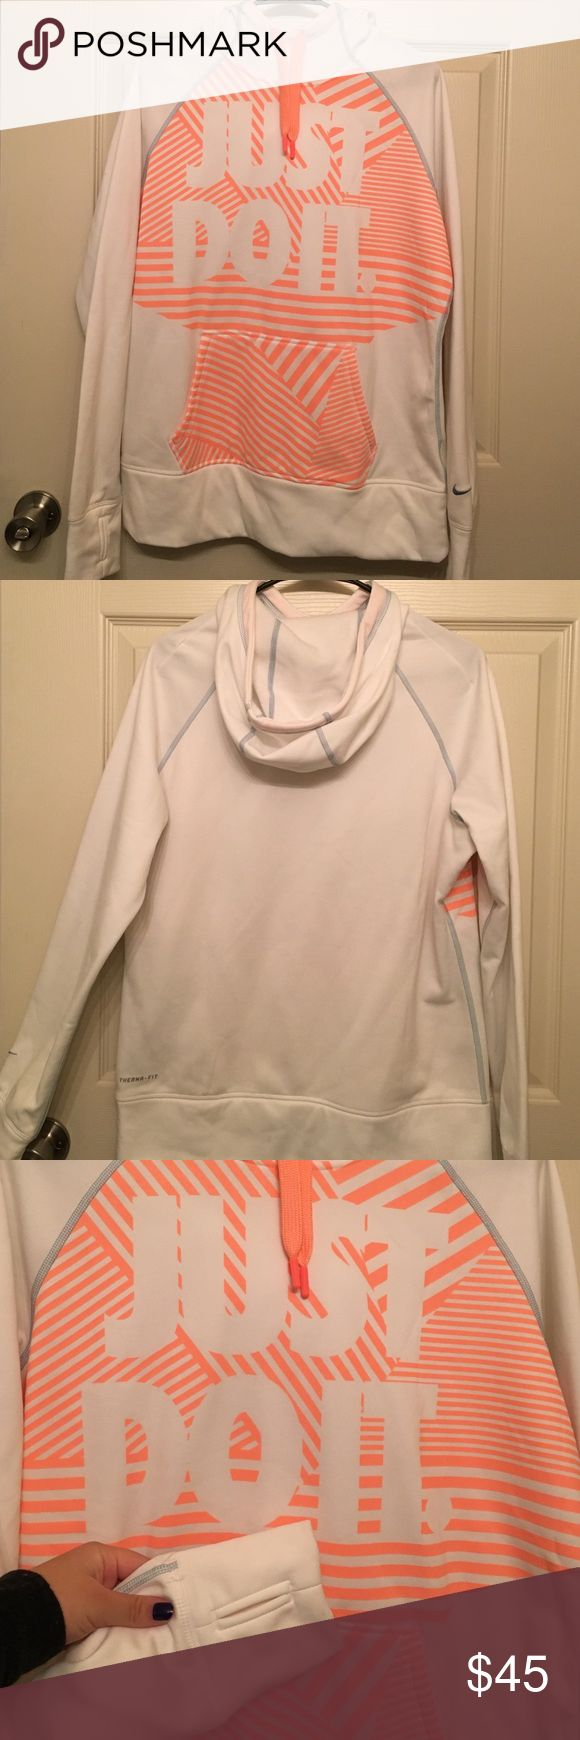 "Women's Nike Sweatshirt ✔️✨ | Women's Nike Sweatshirt | Super cute, never worn sweatshirt. White with bright orange ""Just Do It"" design on front. Kangaroo pouch pocket. Sleeves both have thumb holes. Very soft and comes with a hood. No defects of any sort! If you have any questions at all just let me know!  Nike Jackets & Coats"